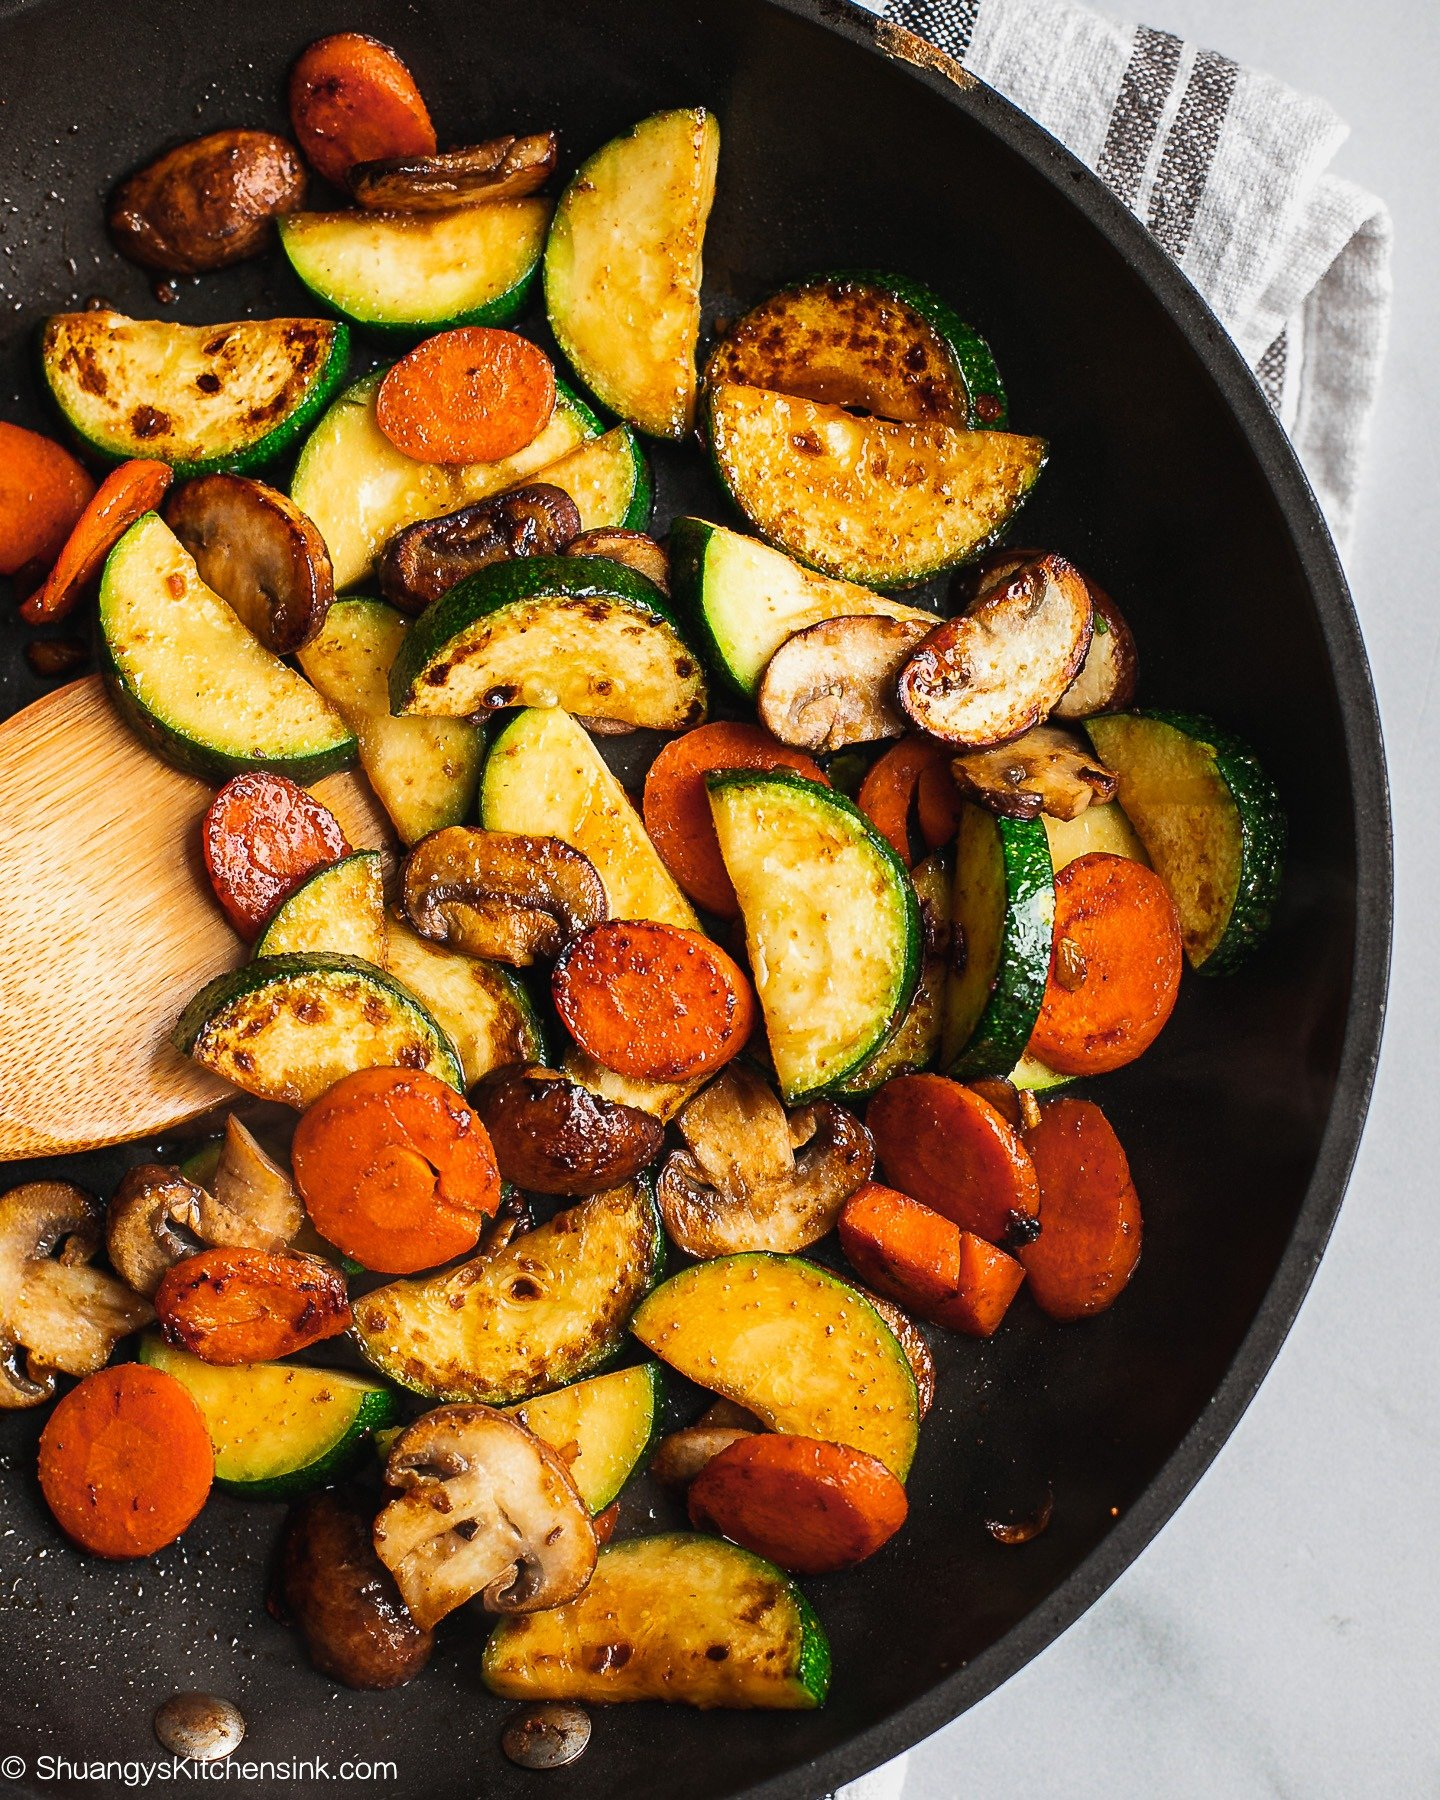 A pan of Zucchini Mushroom Stir Fry. There are zucchini, mushroom, and carrots in them.